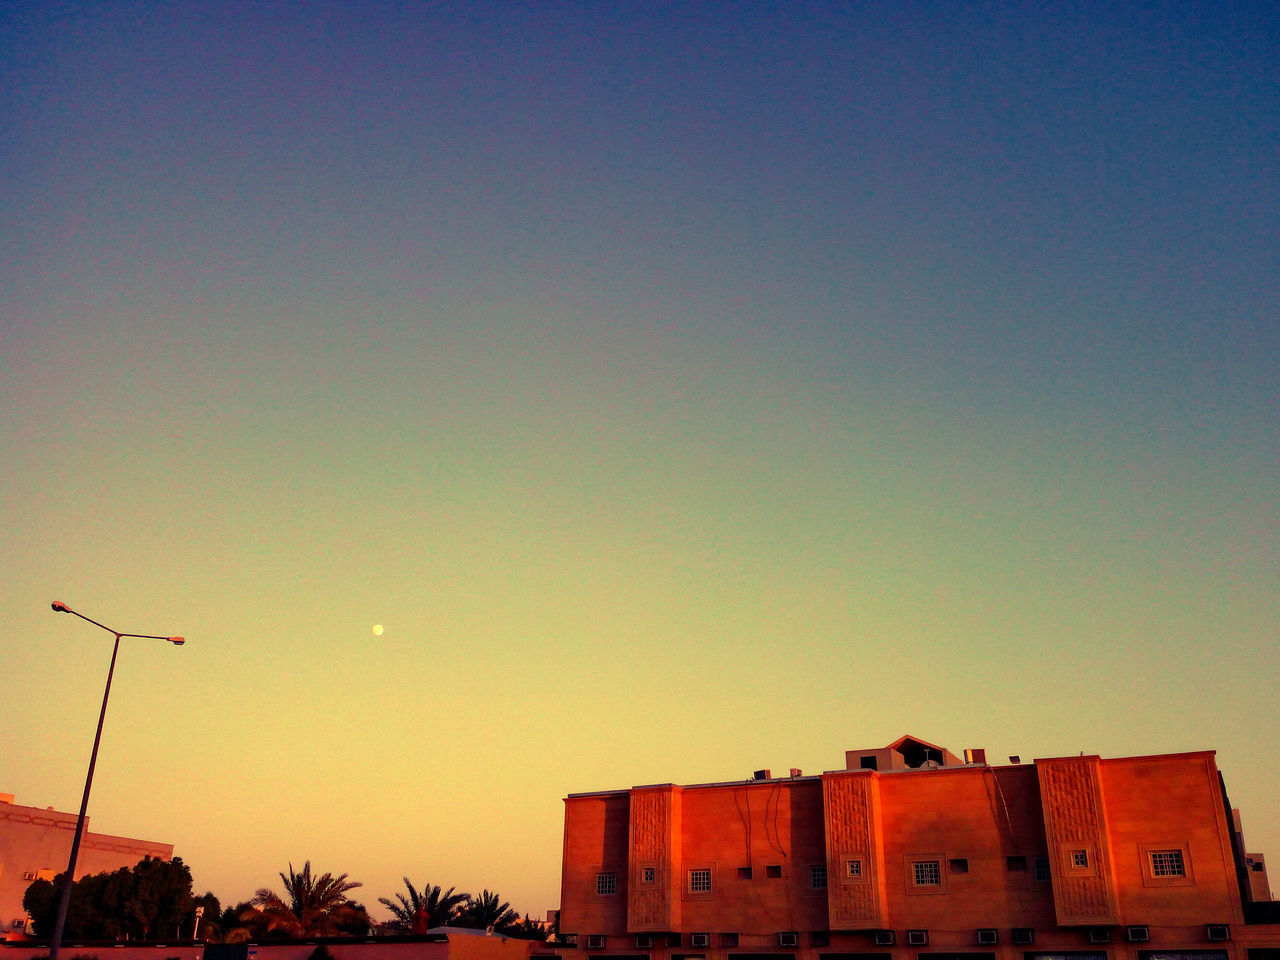 sunset, low angle view, architecture, built structure, building exterior, no people, sky, outdoors, clear sky, nature, day